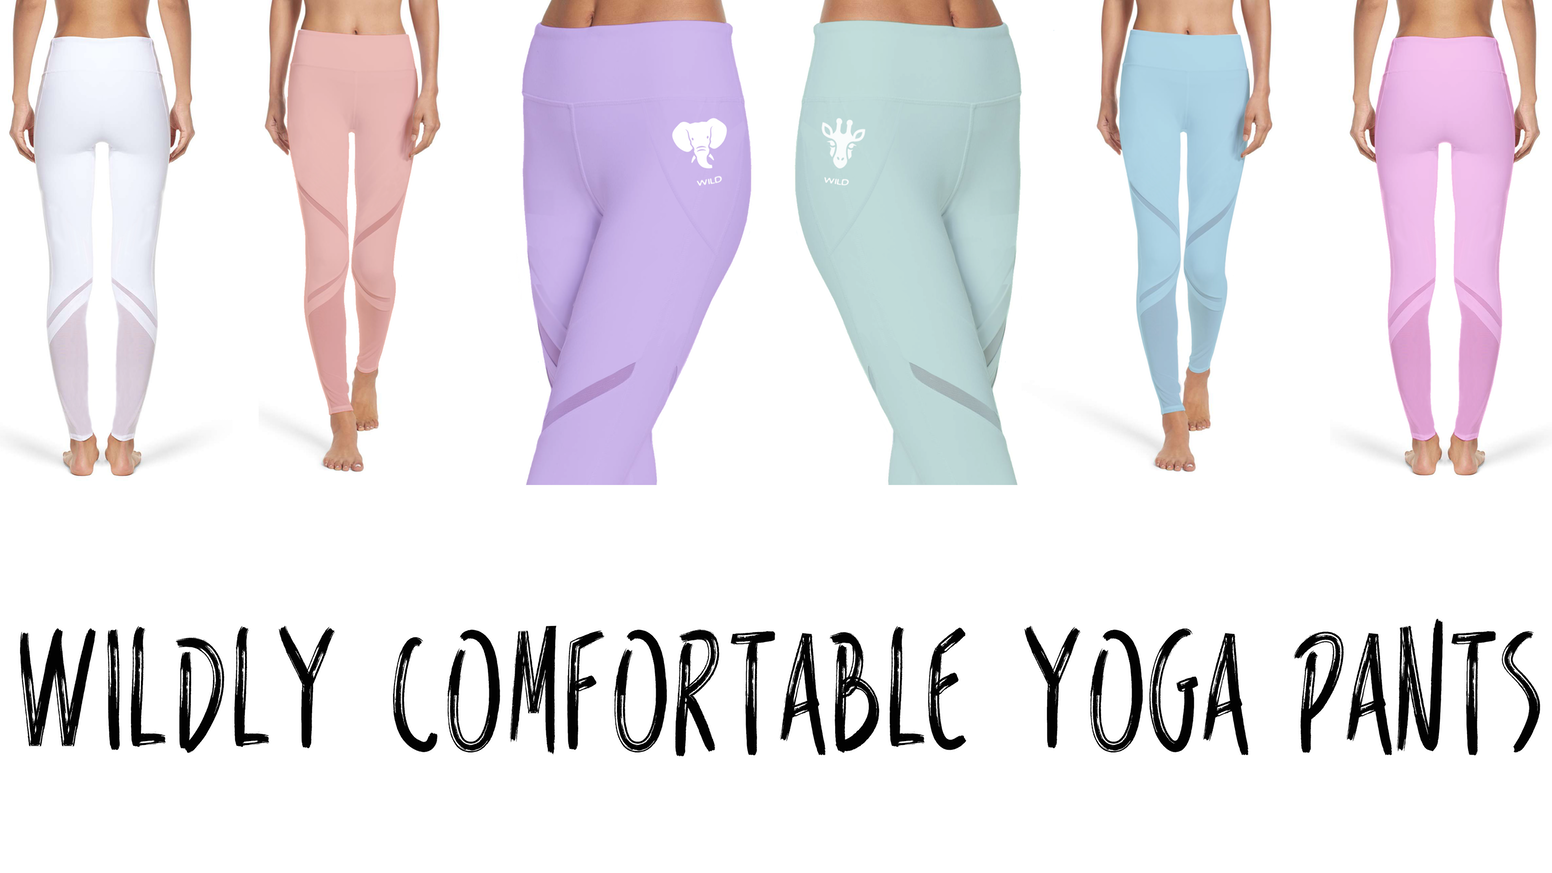 10% of net profits are donated to fund Giraffe and Elephant conservation efforts. Wildly comfortable yoga pants with a cause!